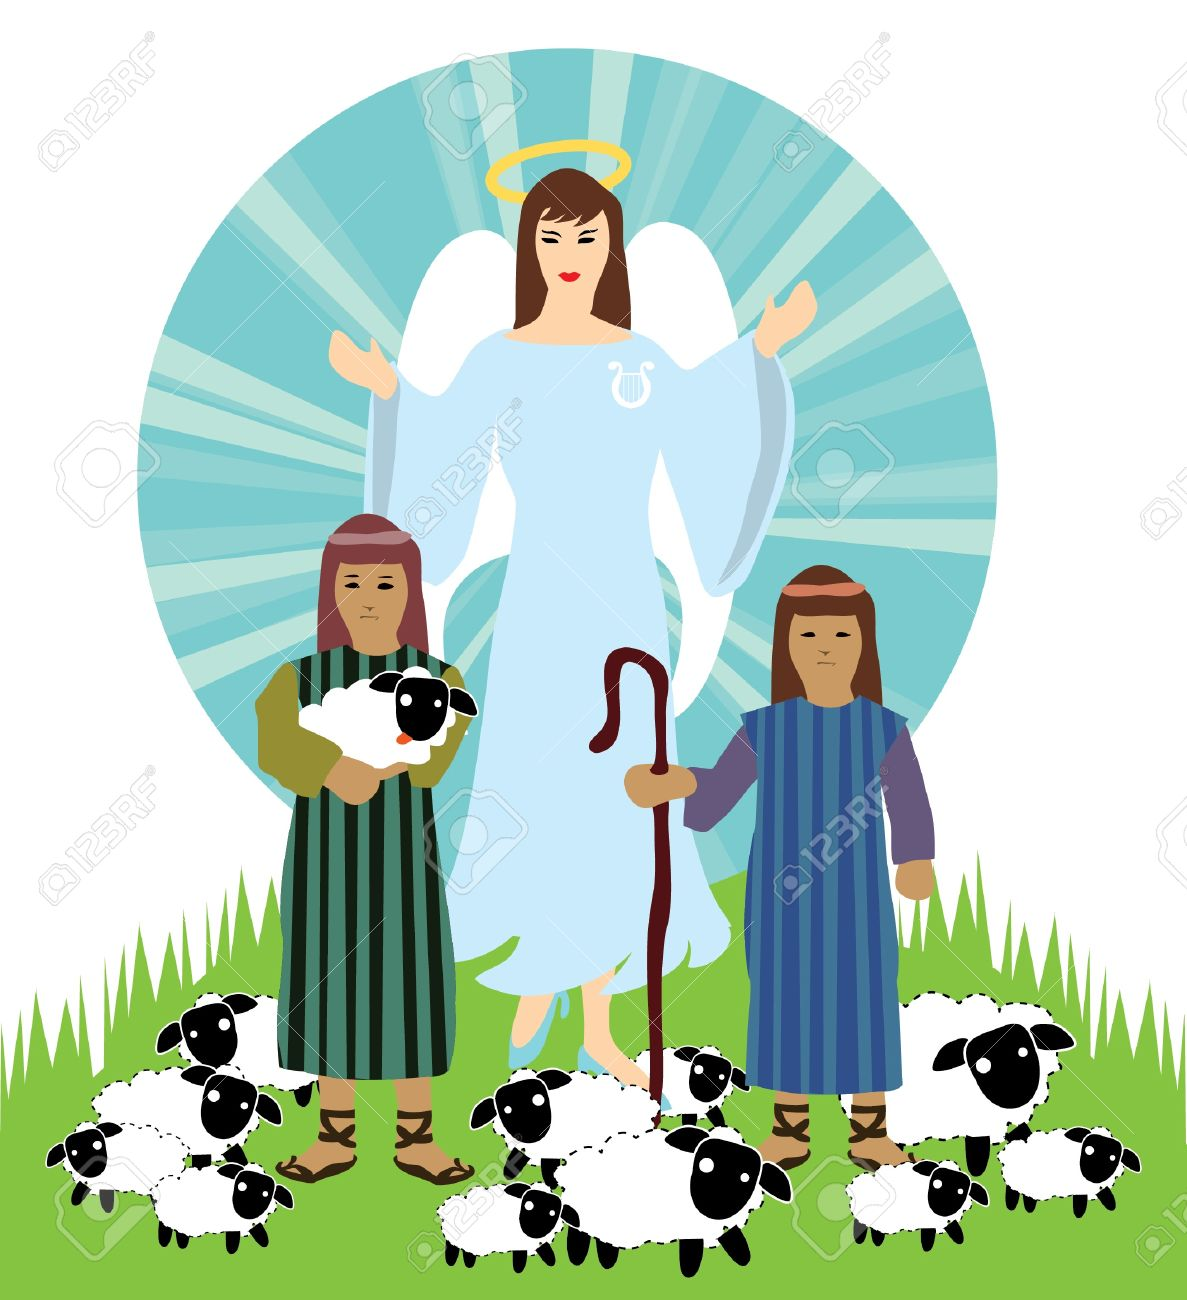 1187x1300 Christmas pictures clip art angels and shepherds – Photo world